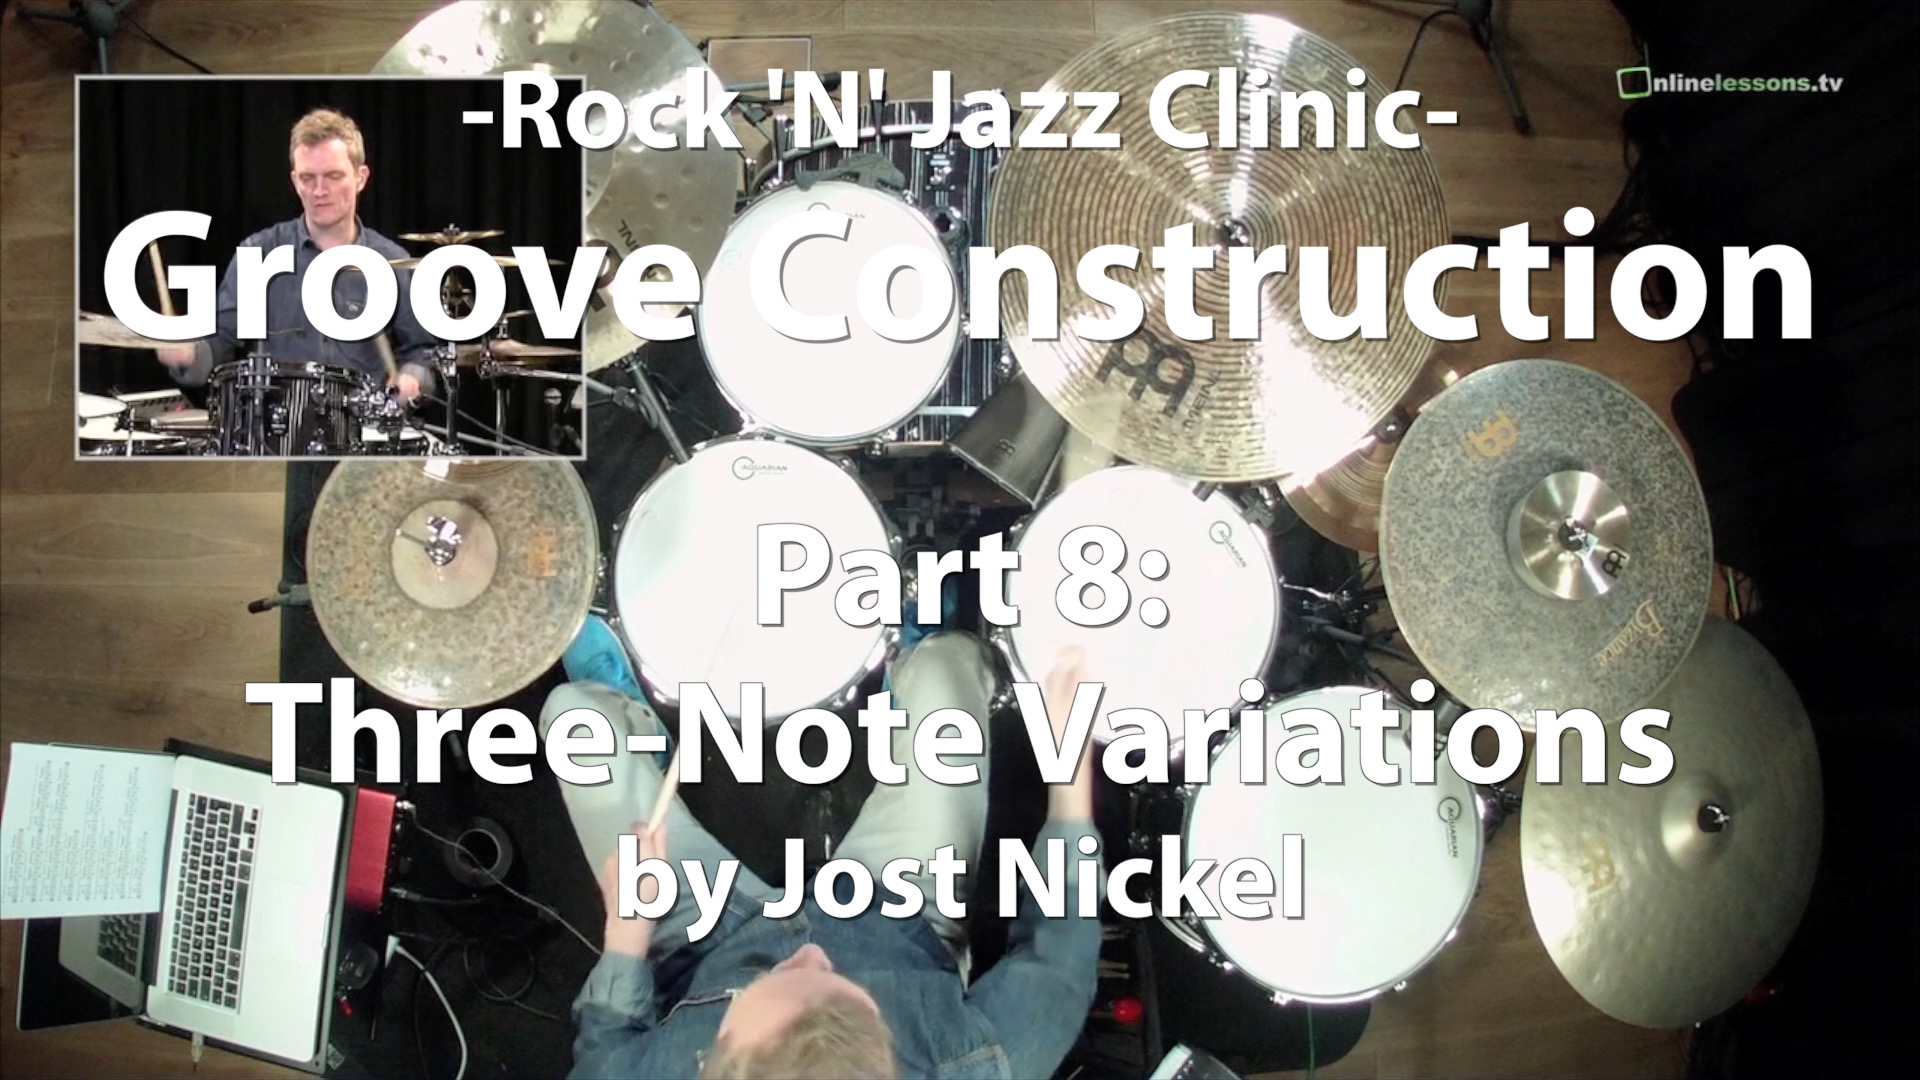 Video Lesson! Groove Construction, Part 8: Three-Note Variations with Jost Nickel